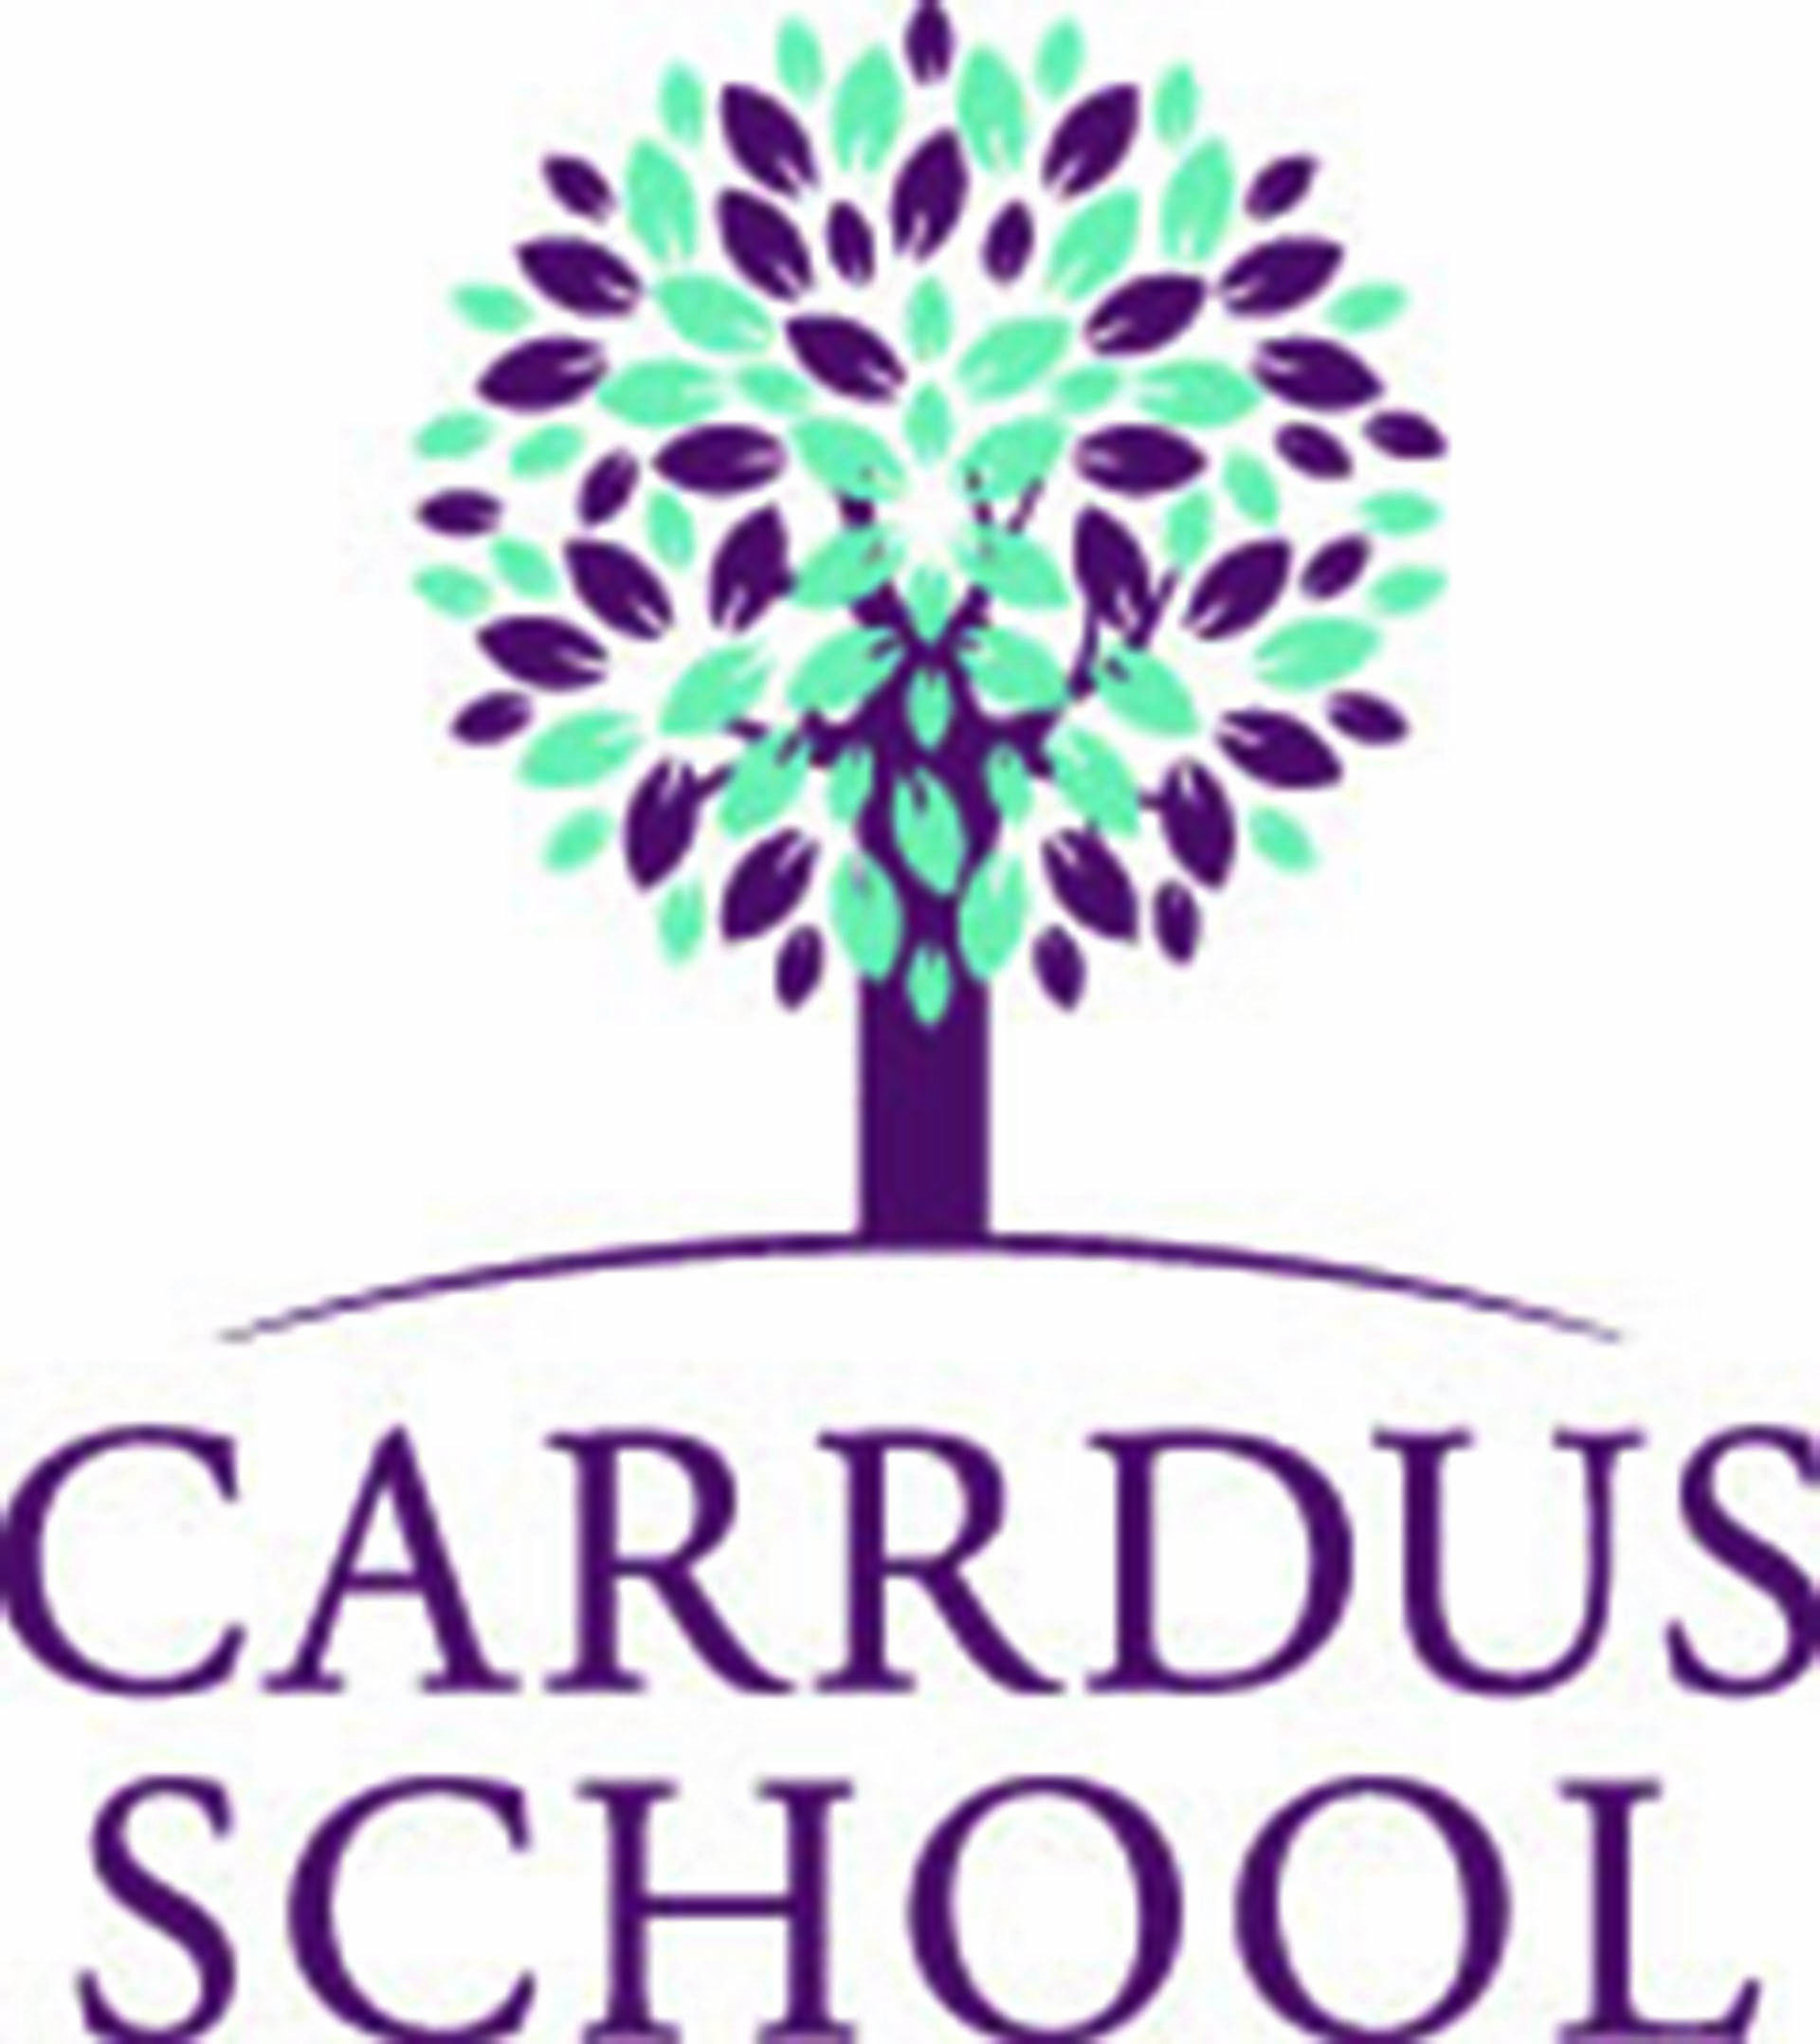 Carrdus School's logo